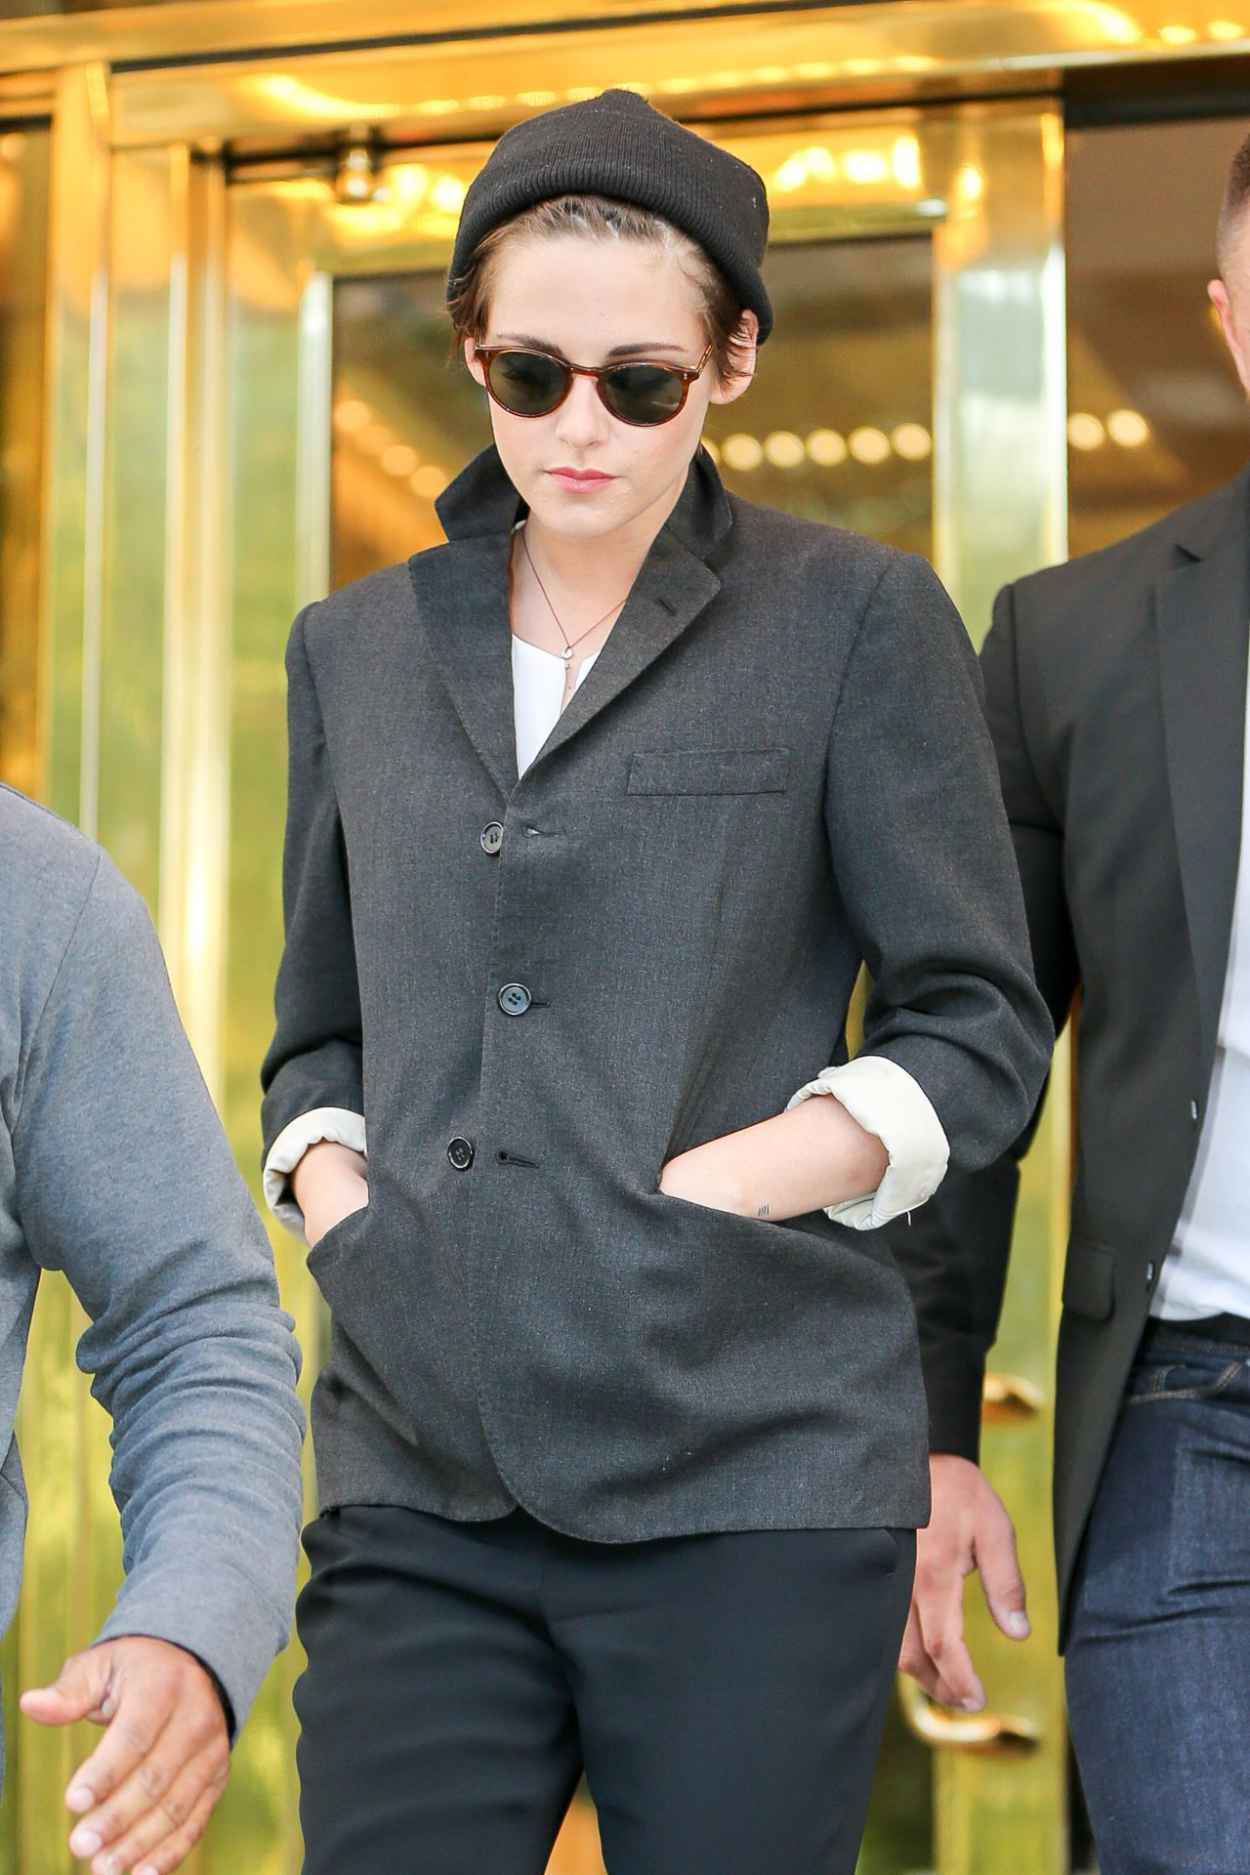 Kristen stewart street style fashion out in new york city october 2015 Fashion style october 2015